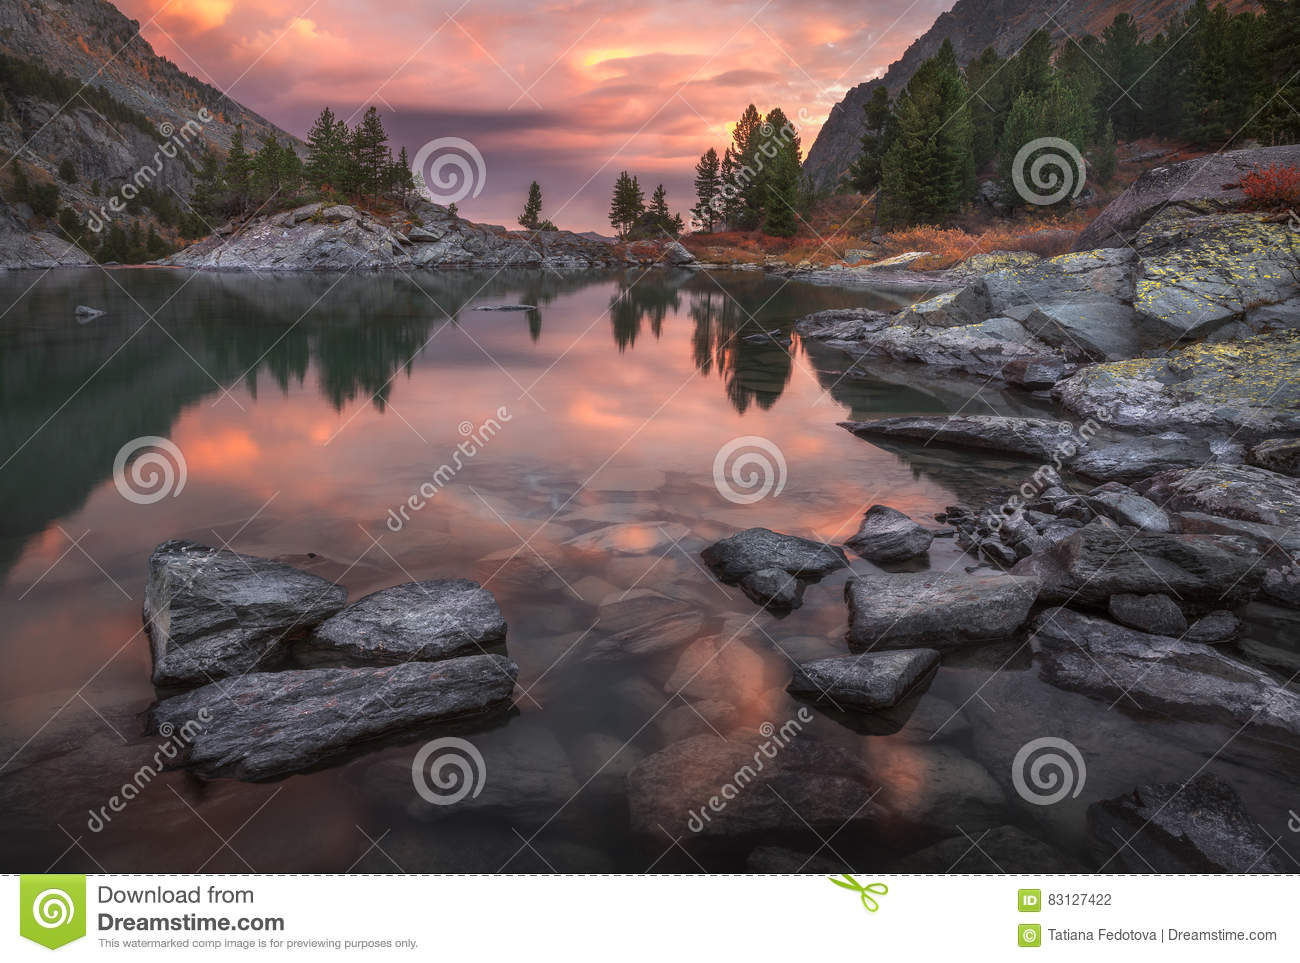 Mountain Lake Sunset Coast With Pine Forest And Rocks, Altai Mountains Highland Nature Autumn Landscape Photo